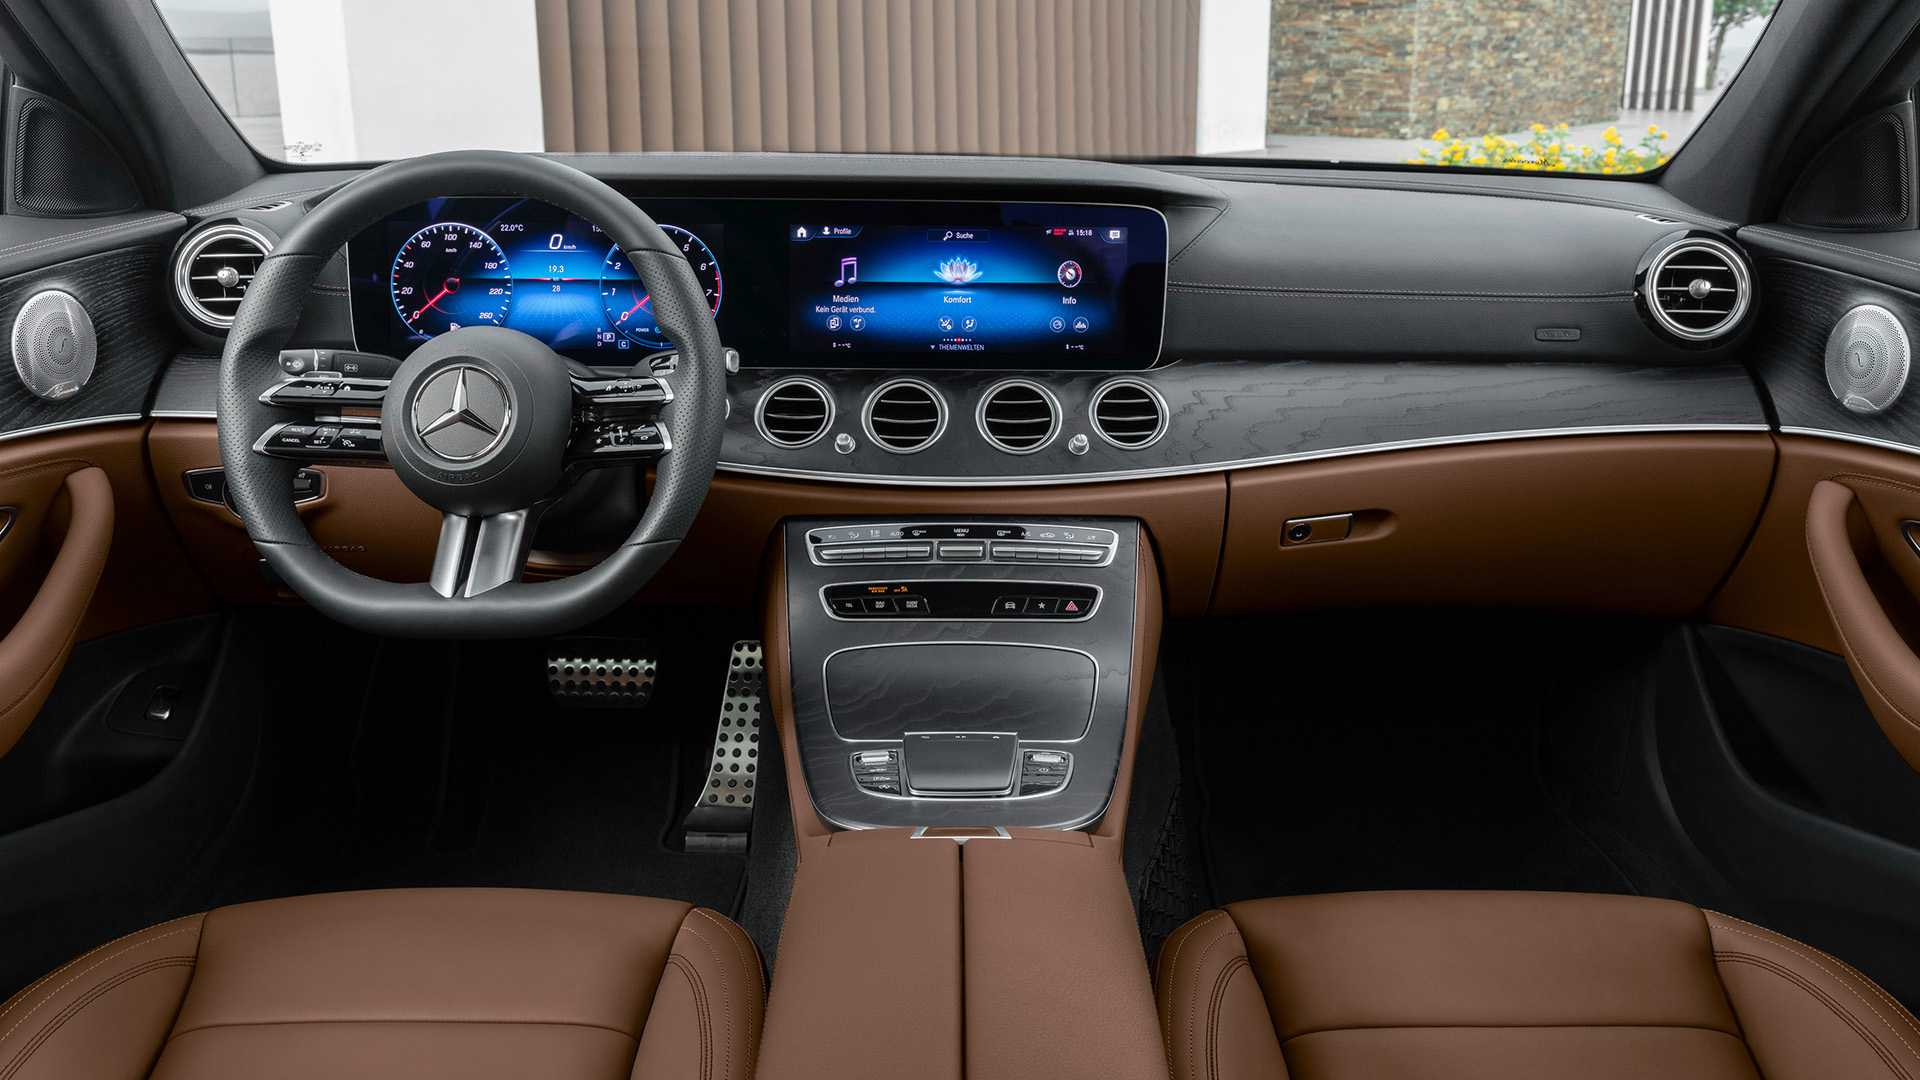 VWVortex.com - 2021 Mercedes-Benz E-Class Facelift: All ...